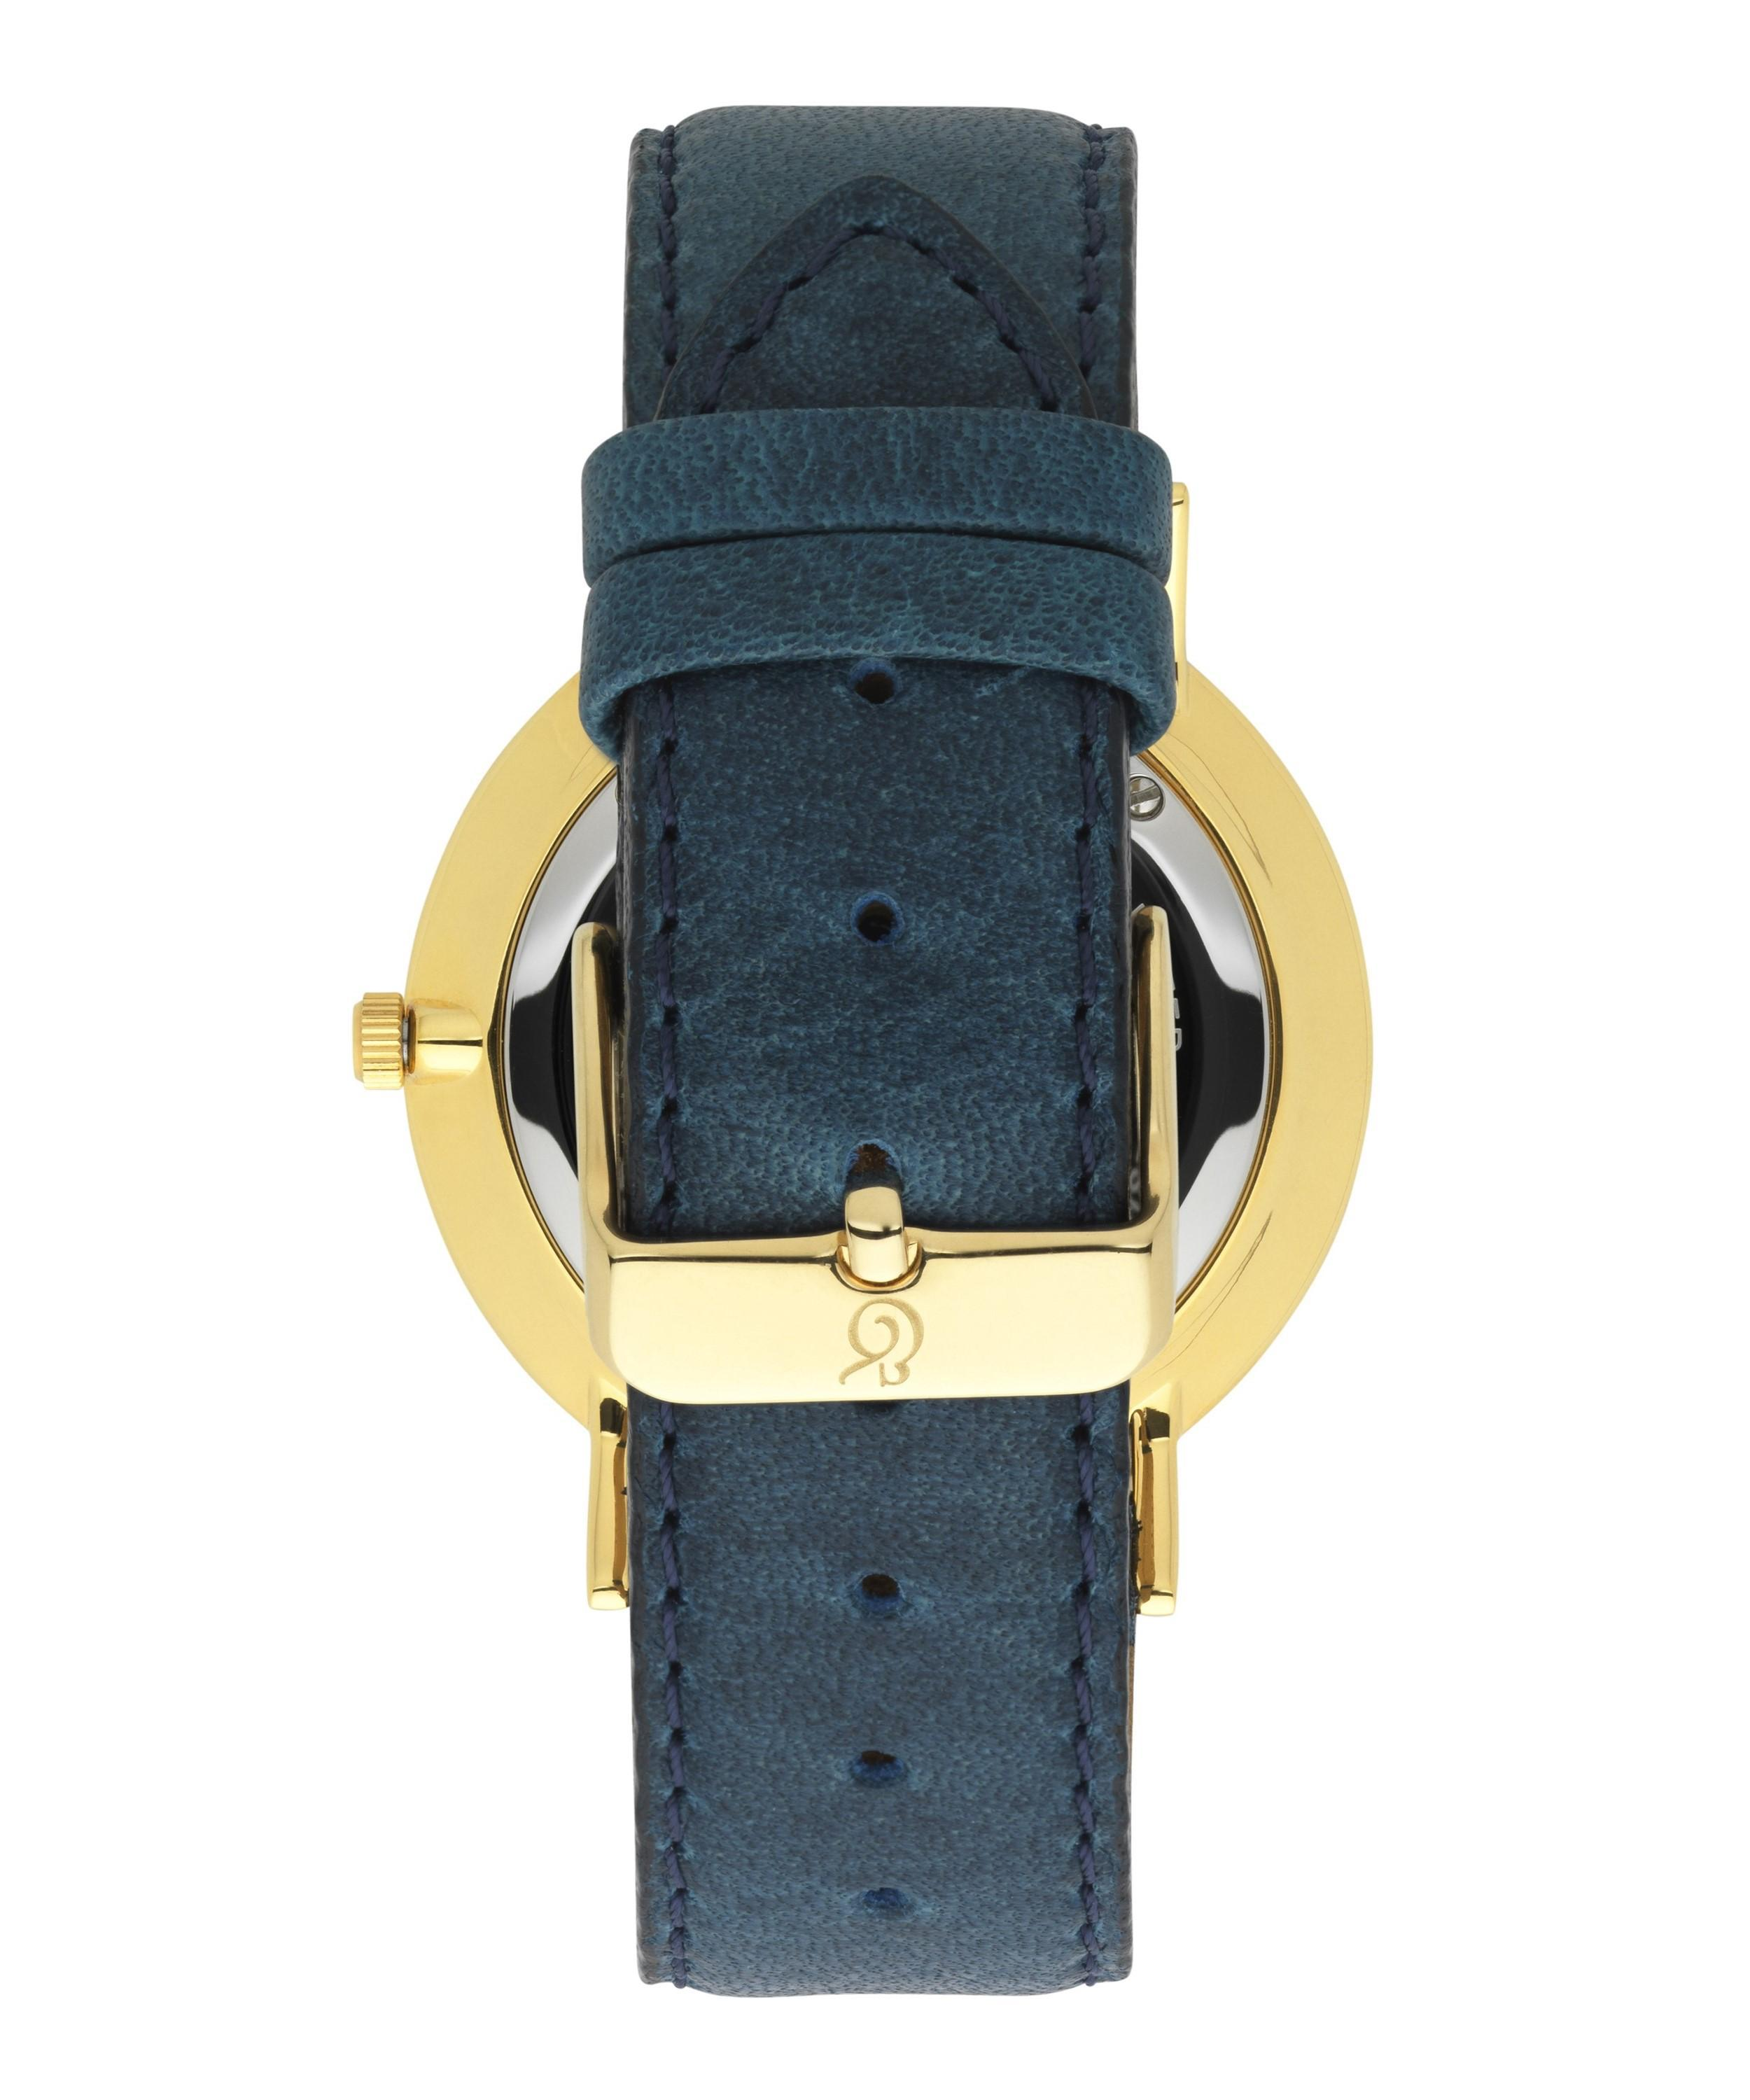 e490db3bcab40 Larsson & Jennings Gold-plated Lader Cyan Leather Strap Watch in ...